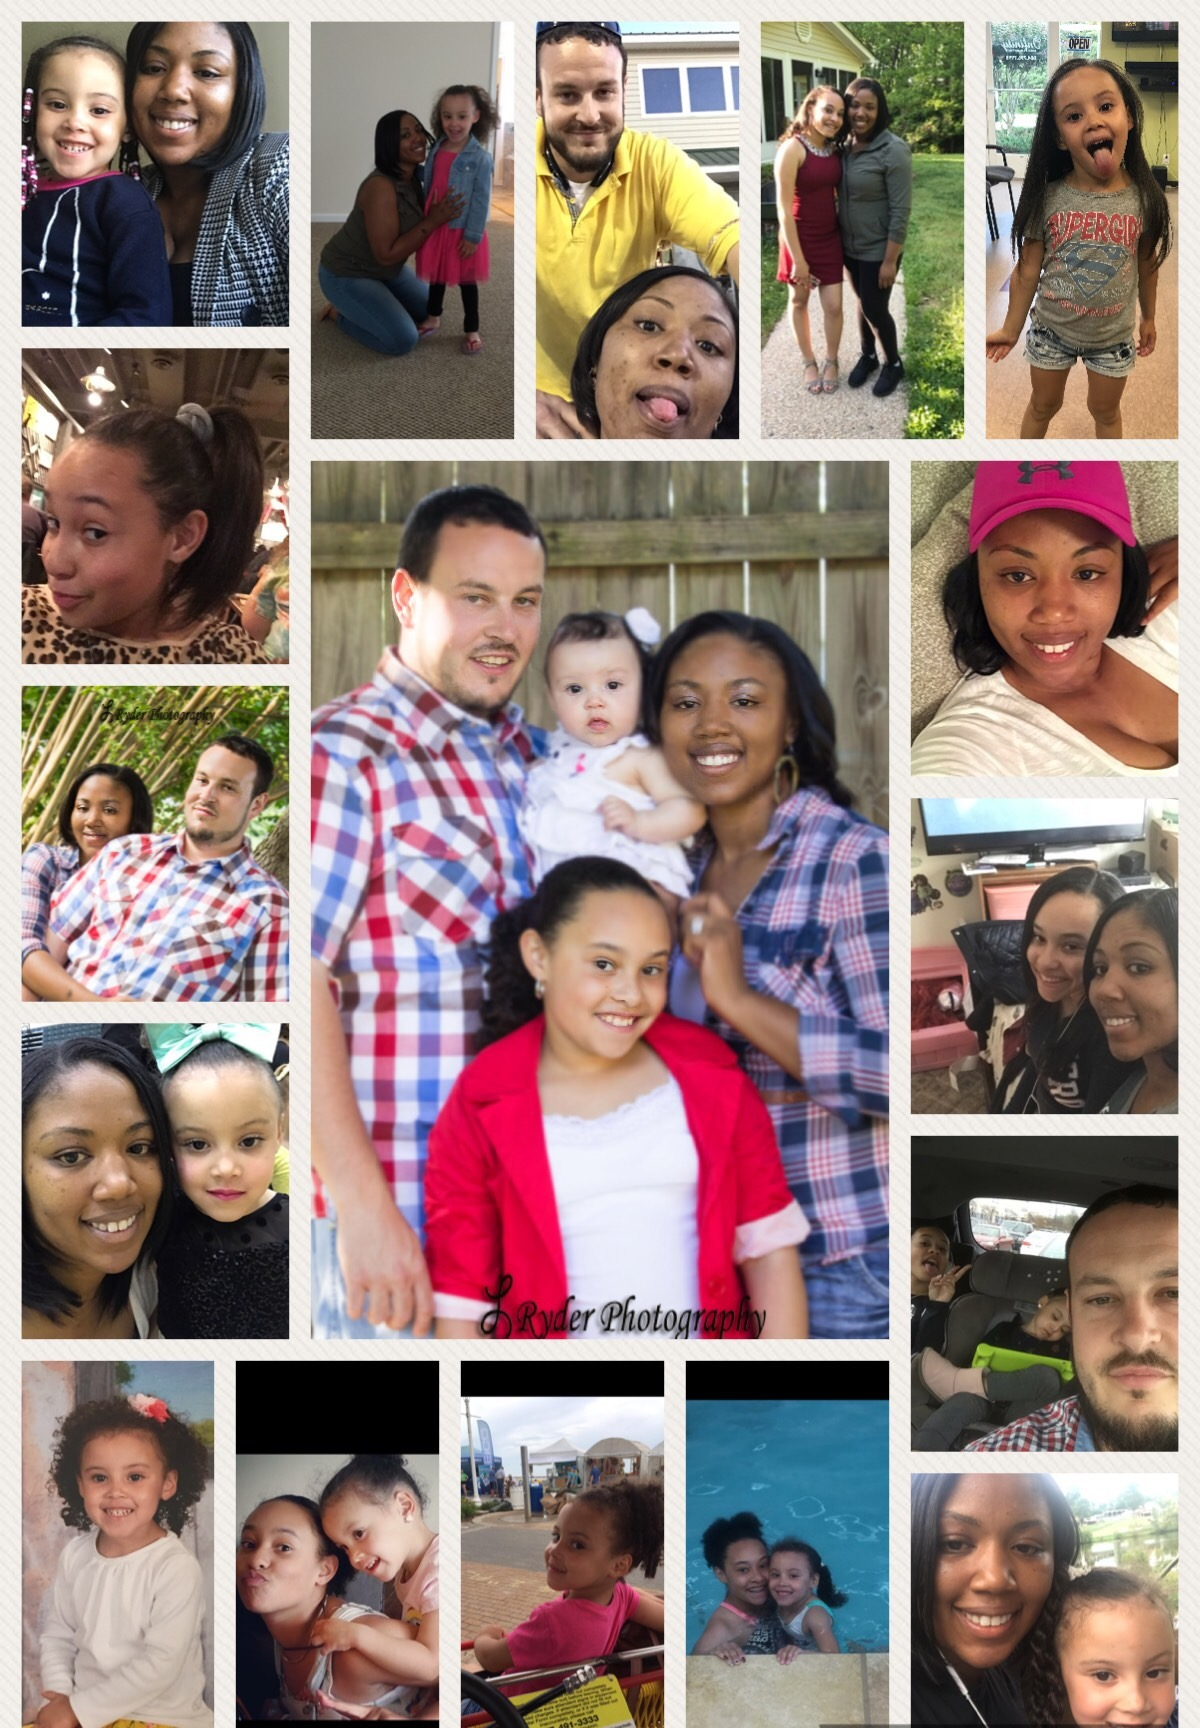 The Martin family in a collage of photos